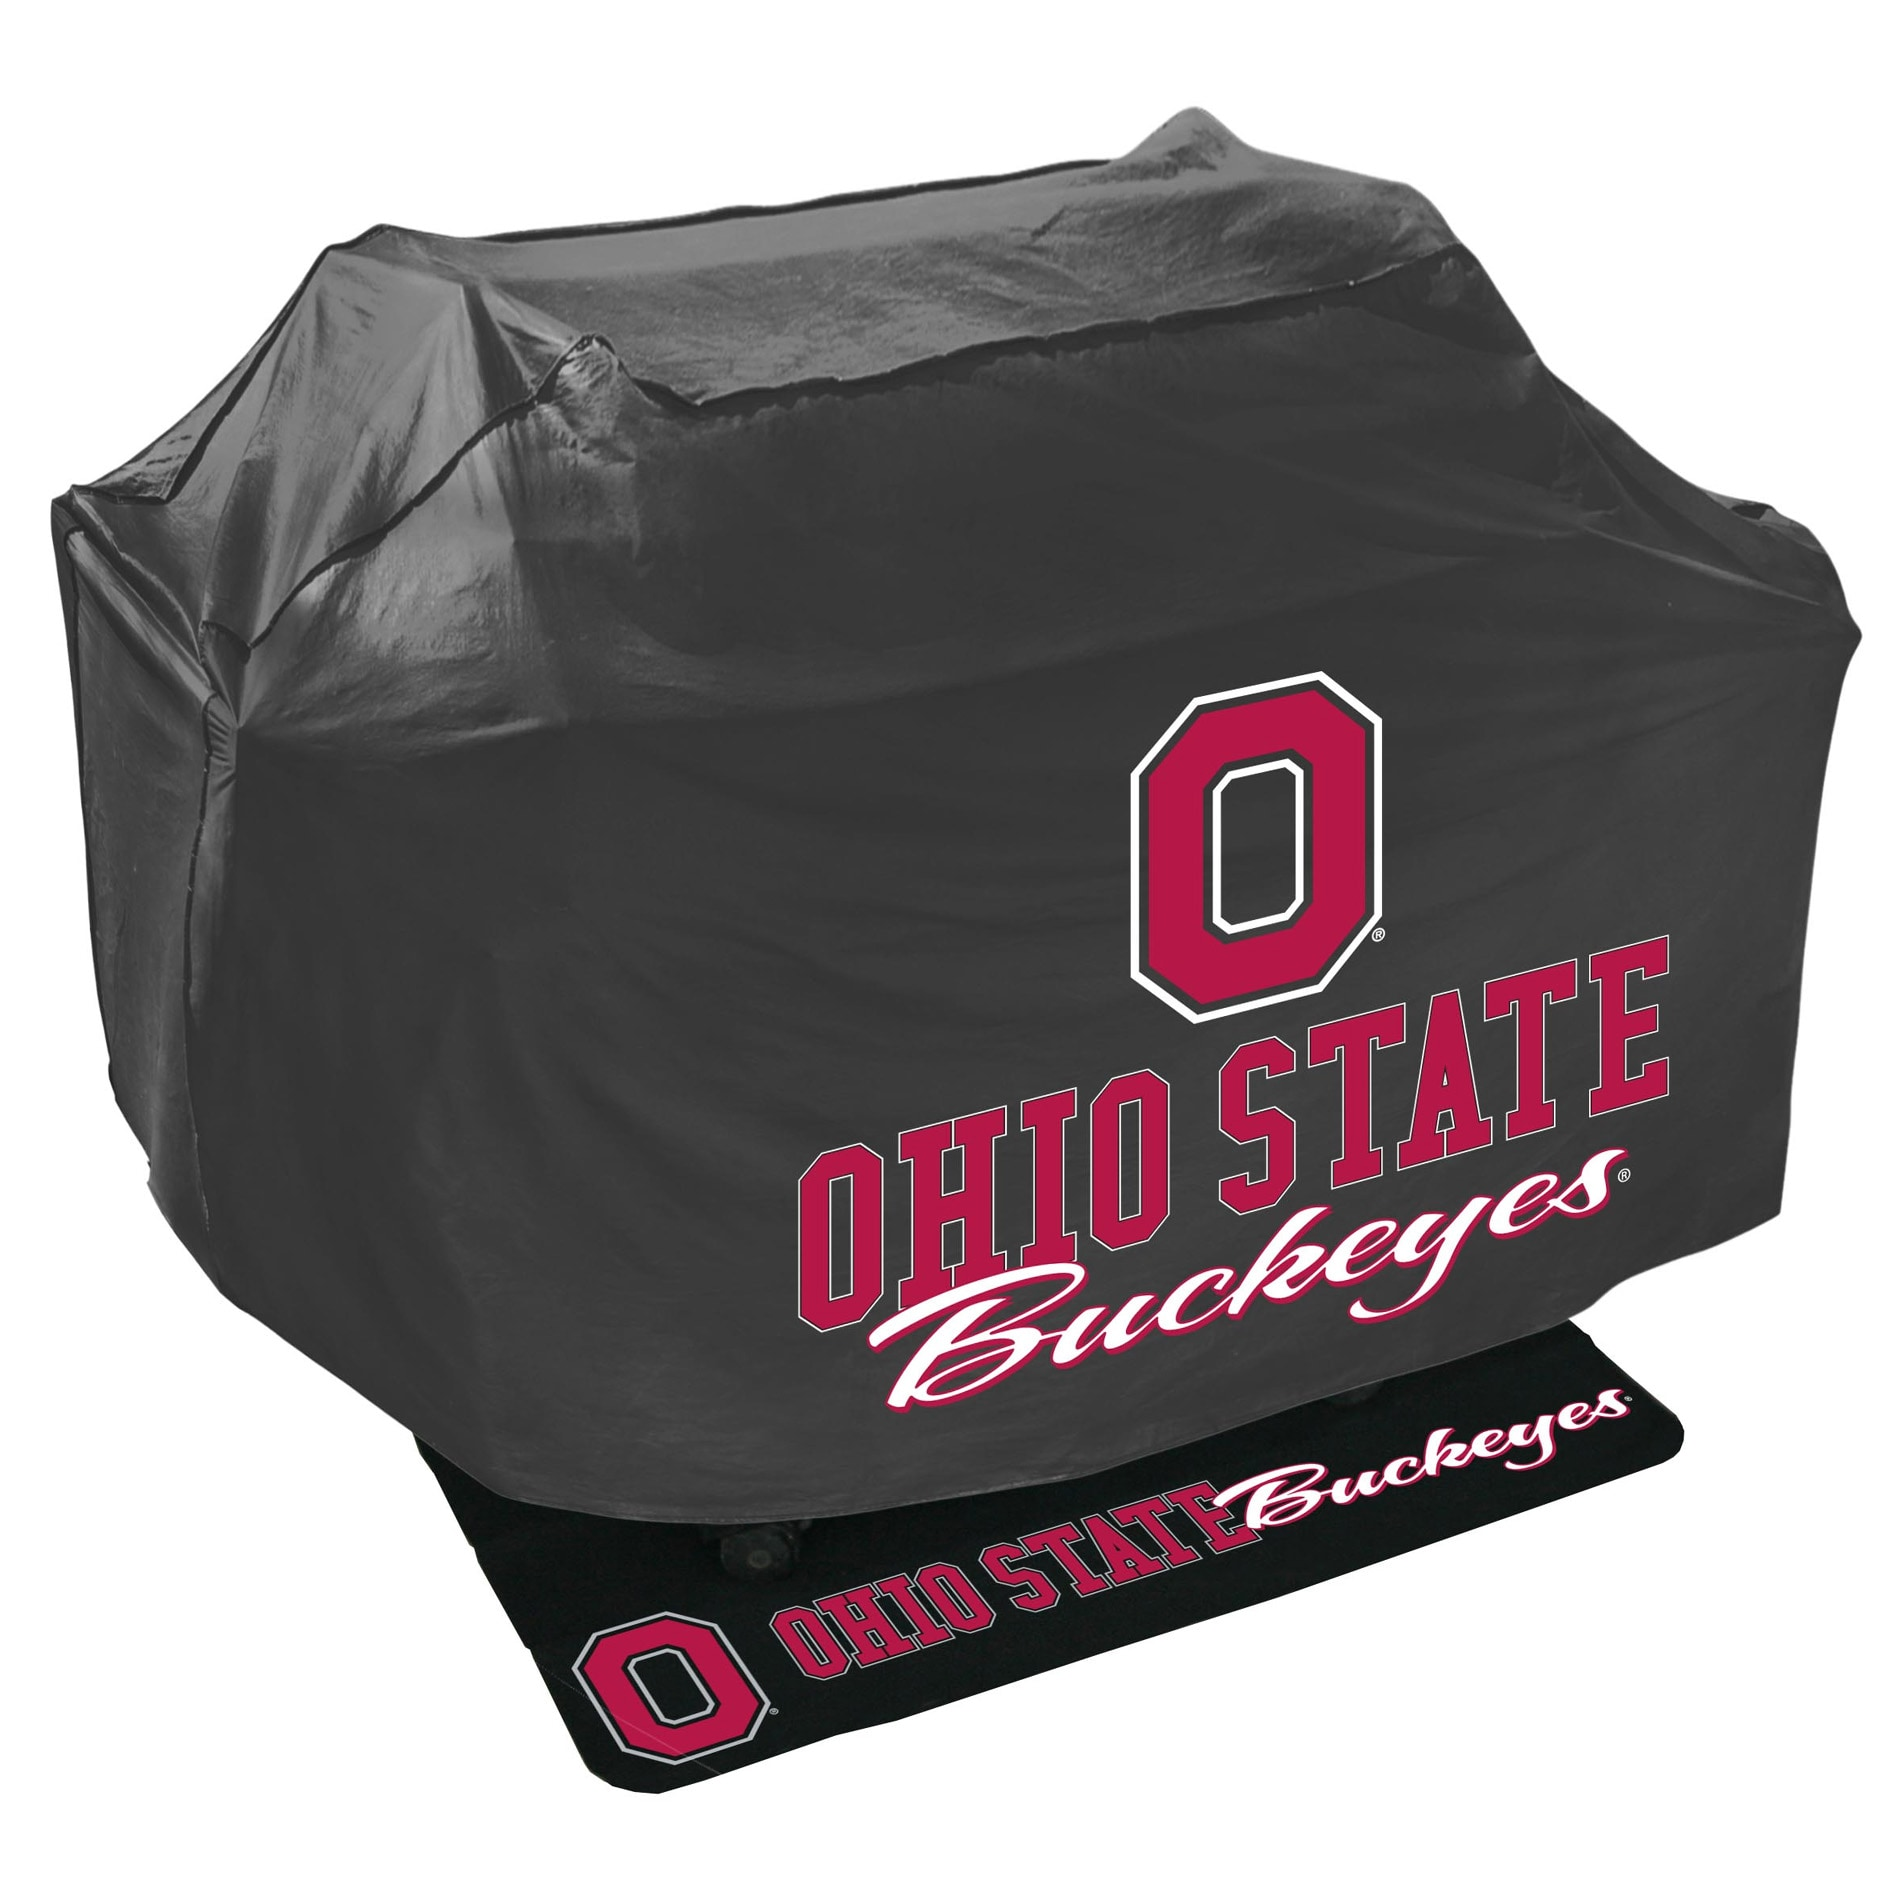 Ohio State Buckeyes Grill Cover and Mat Set